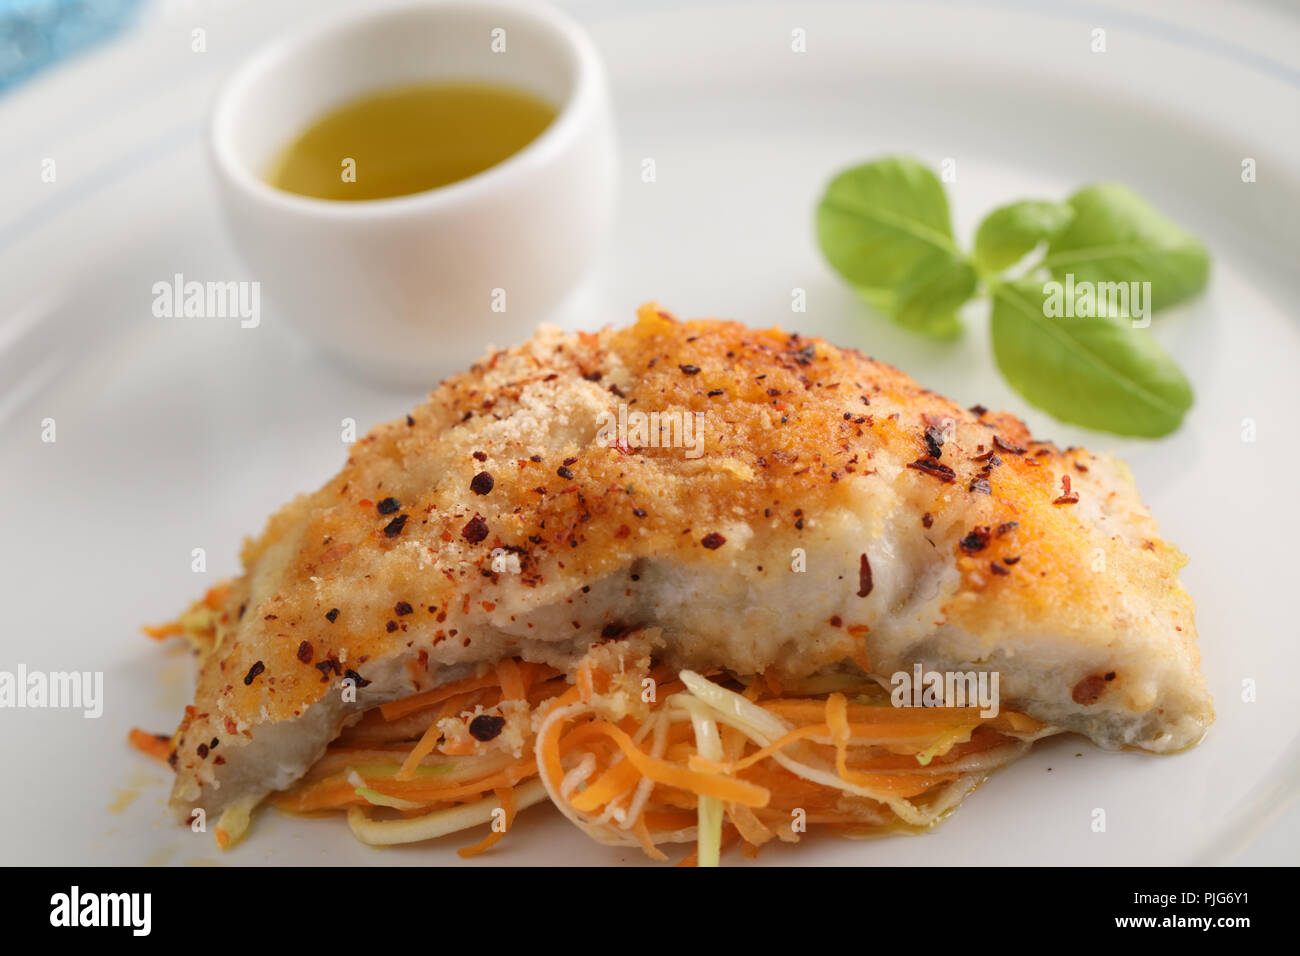 Baked breaded cod fish on vegetable bed topped with basil leaf - Stock Image